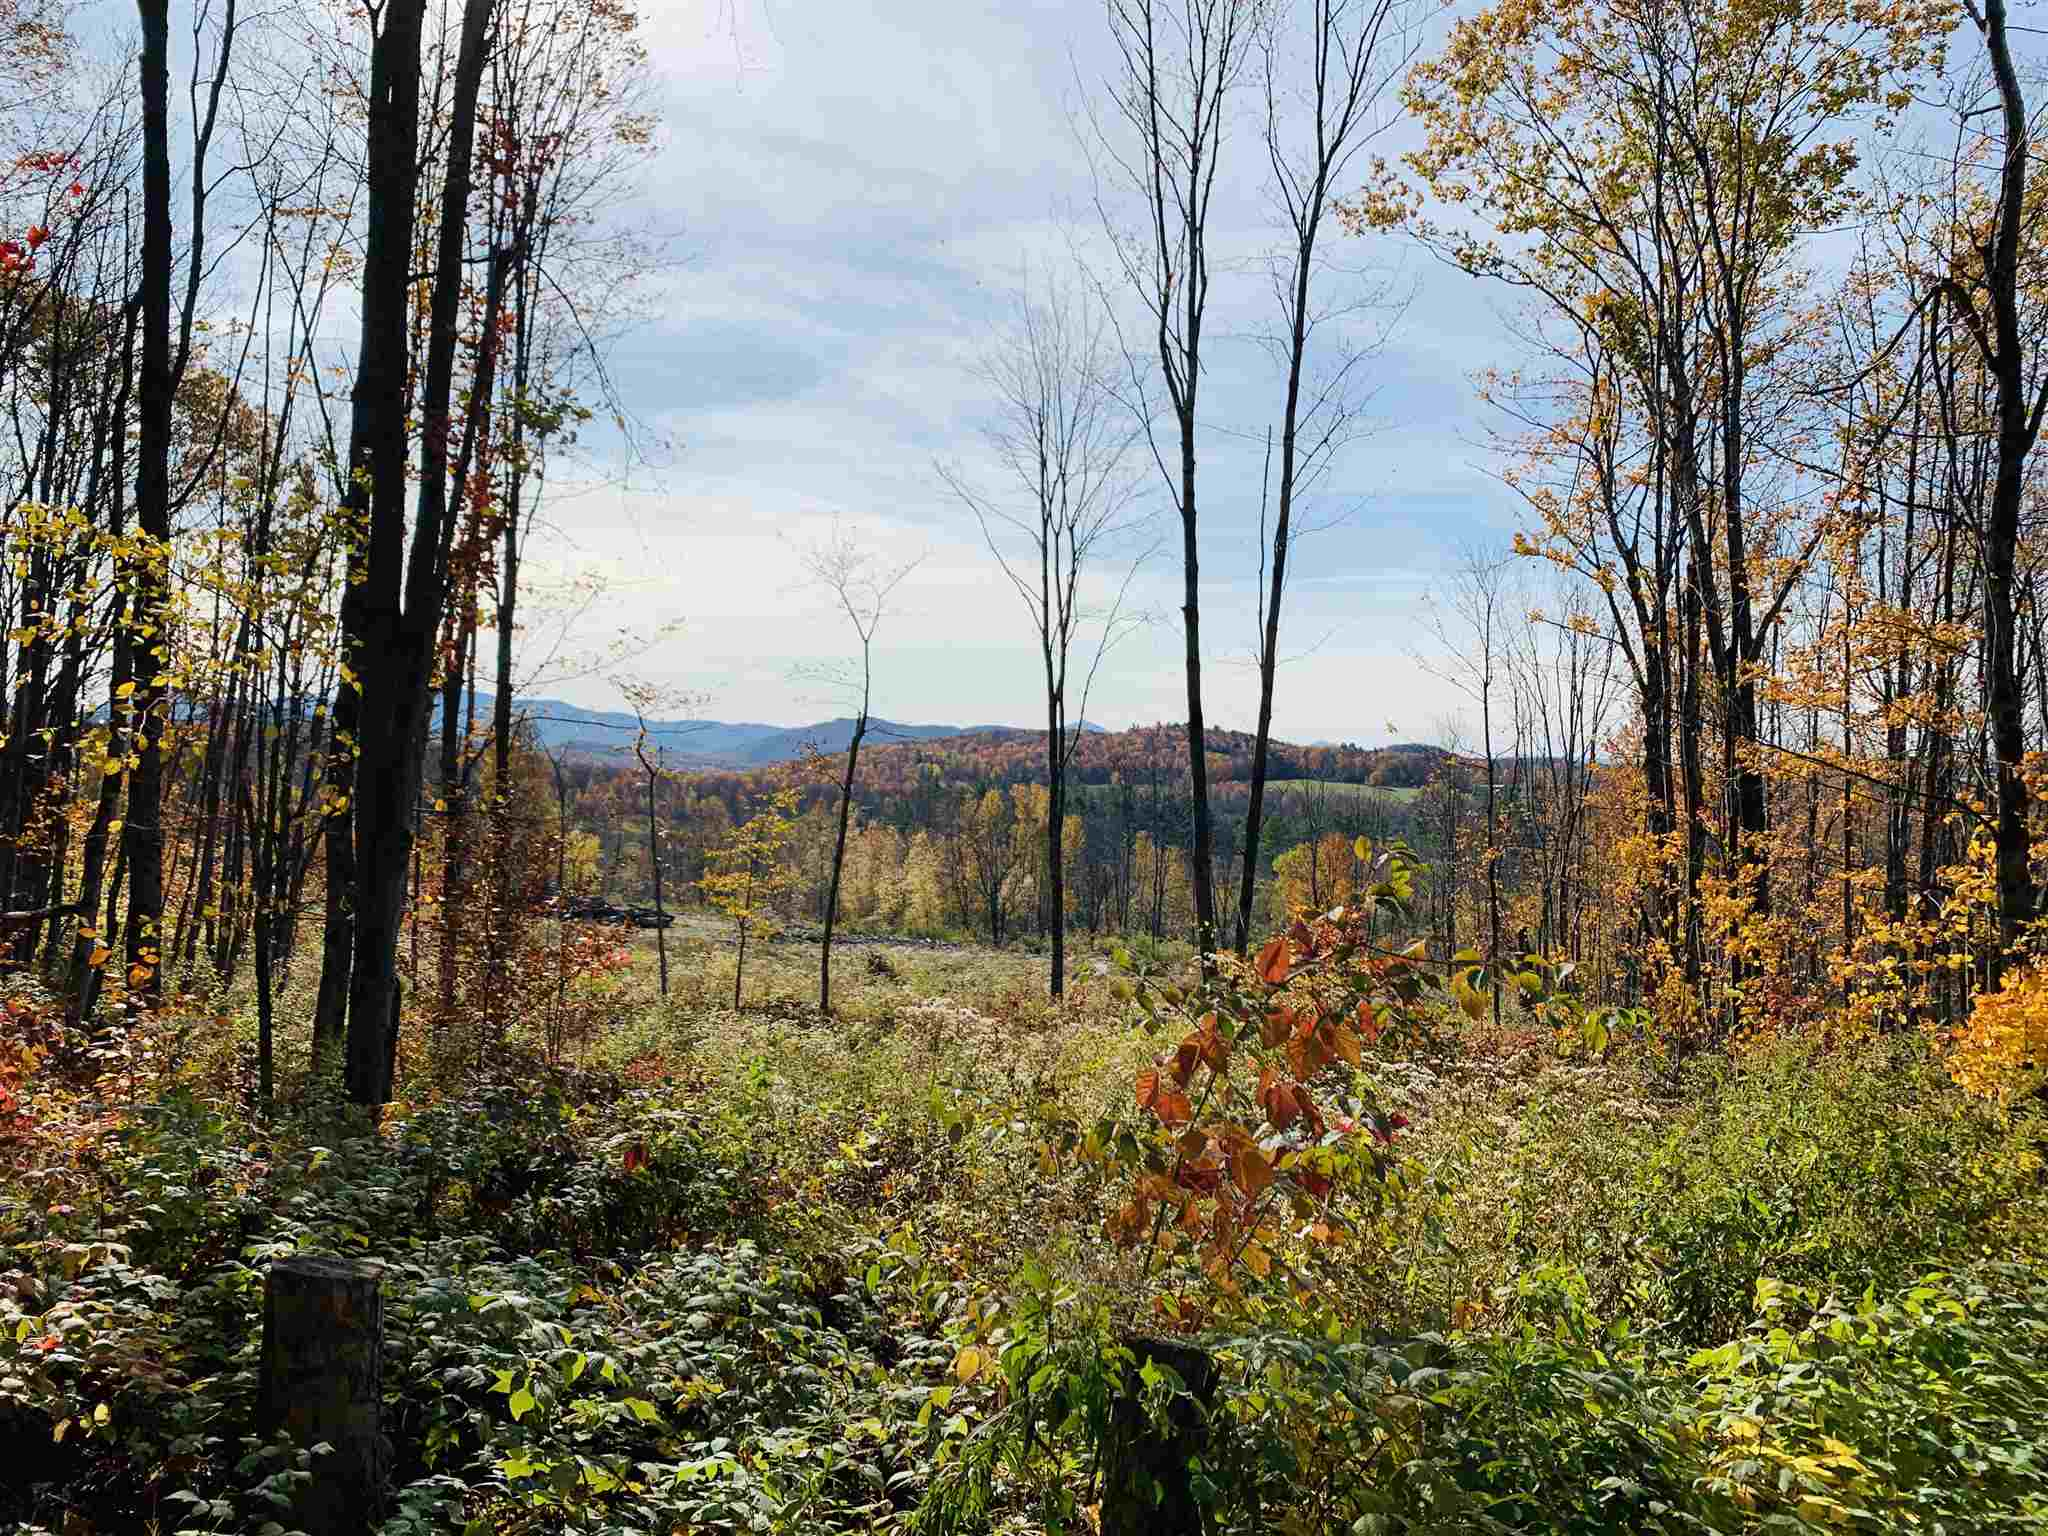 300+/- private acres for sale with 14,615 Maple tap potential [per Greenleaf Forestry 9/17/19 Field Analysis]. Off Rte 15 in Underhill, but situated in Westford. Expand or build your Maple empire. Build your forever home as well, with Mount Mansfield views! Excellent Southern exposure, well sloped. Logging roads zig zag property for access and nature walks. Town allows one residence to be built off Repa Road access, off Route 15 in Underhill. Westford's Goodrich Trail ROW crosses property.Deer yard and Beaver pond.  Town lists 300 acres, deed lists 281 acres.